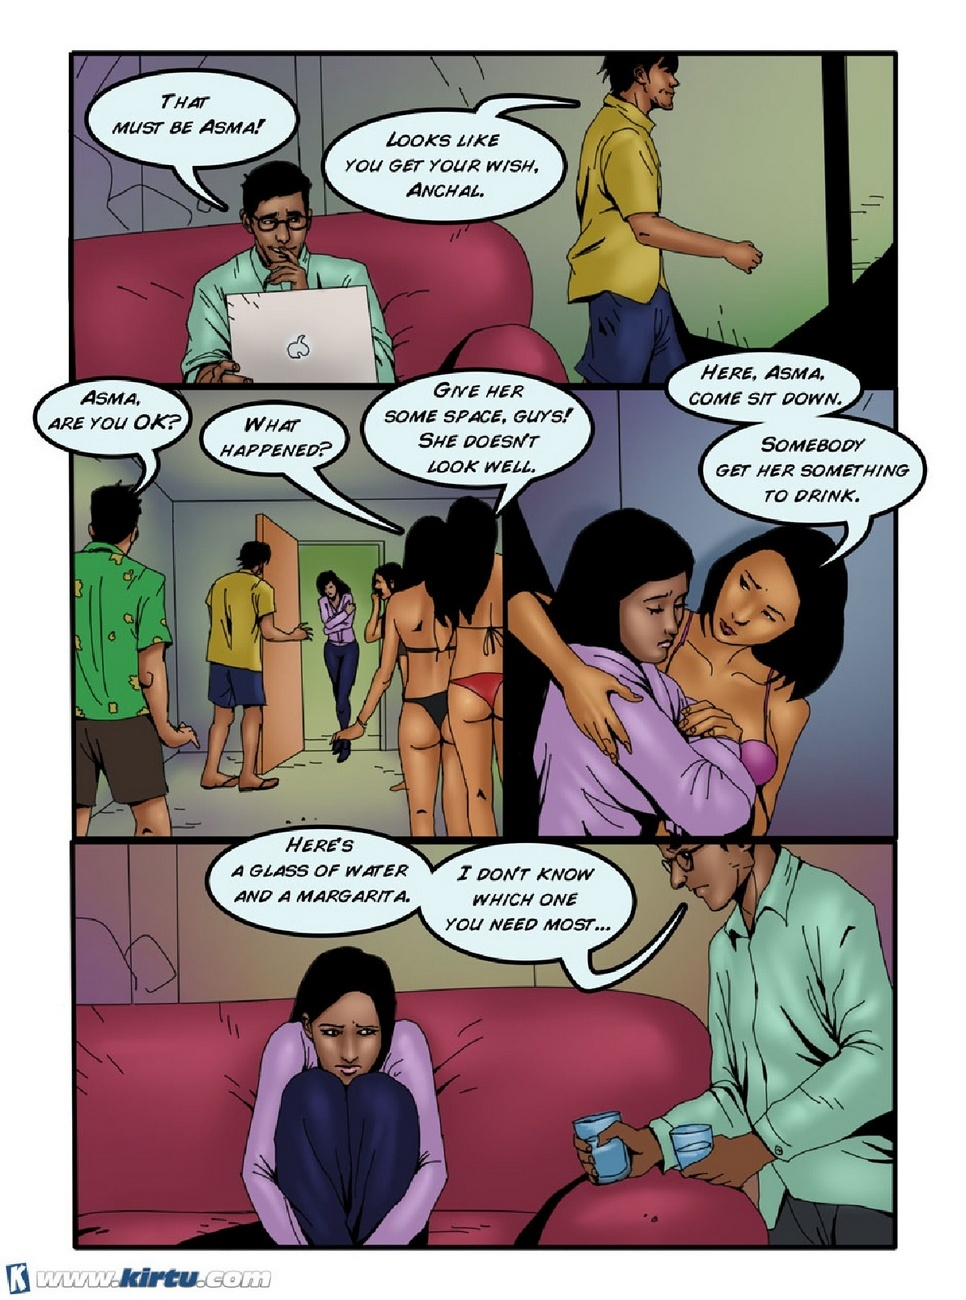 Saath-Kahaniya-10-The-Game3 free sex comic